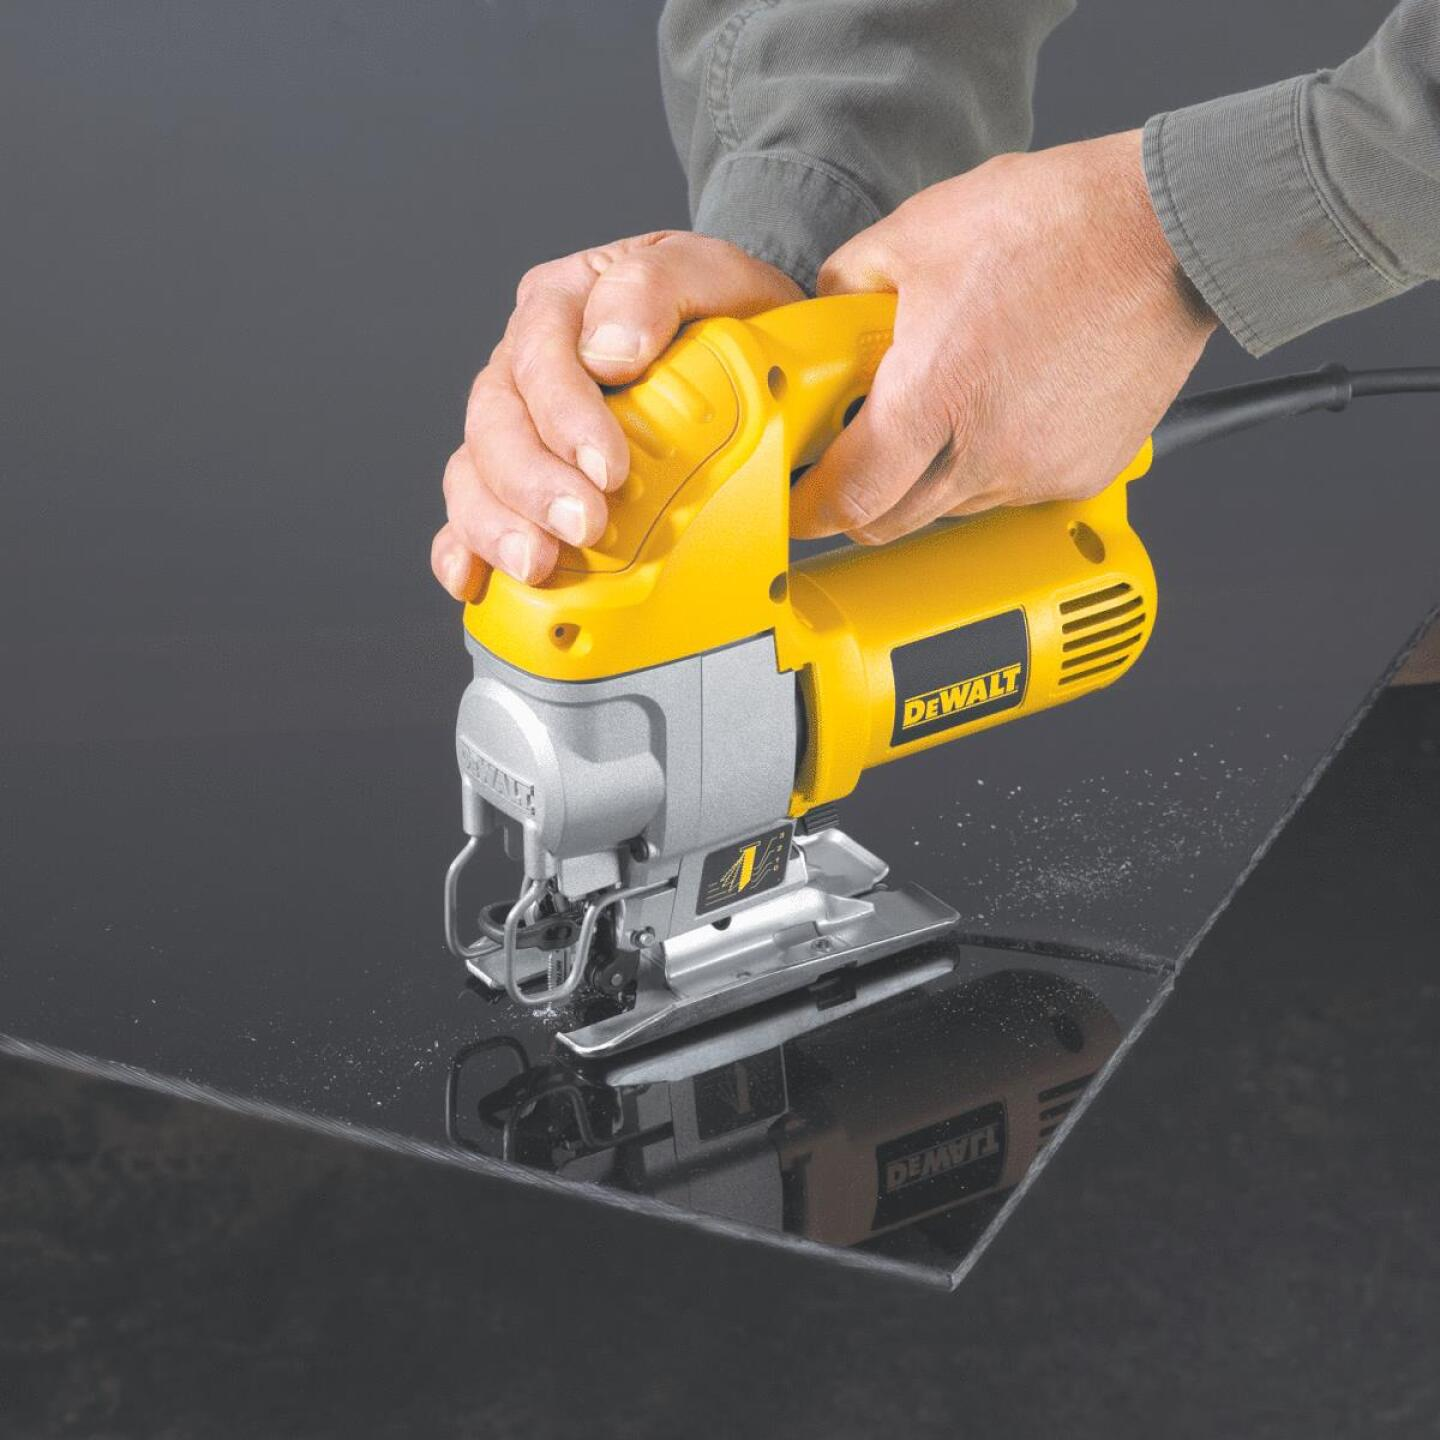 DeWalt 5.5A 4-Position 0 to 3100 SPM Jig Saw Image 7